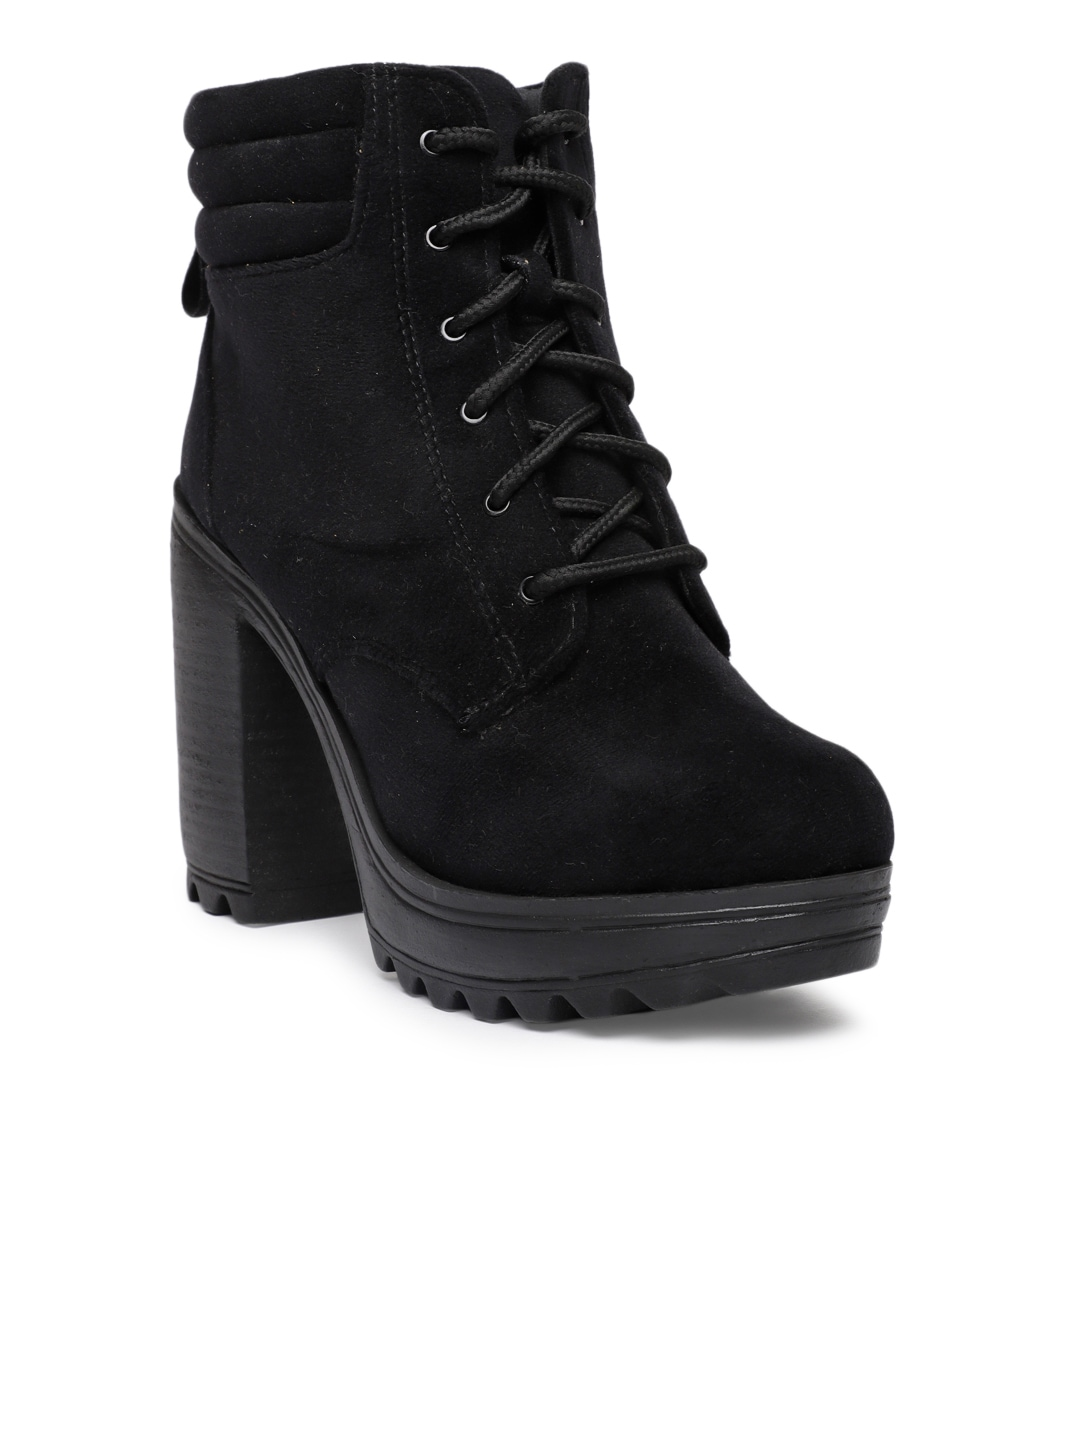 f7c53debe7ab Womens Boots - Buy Boots for Women Online in India